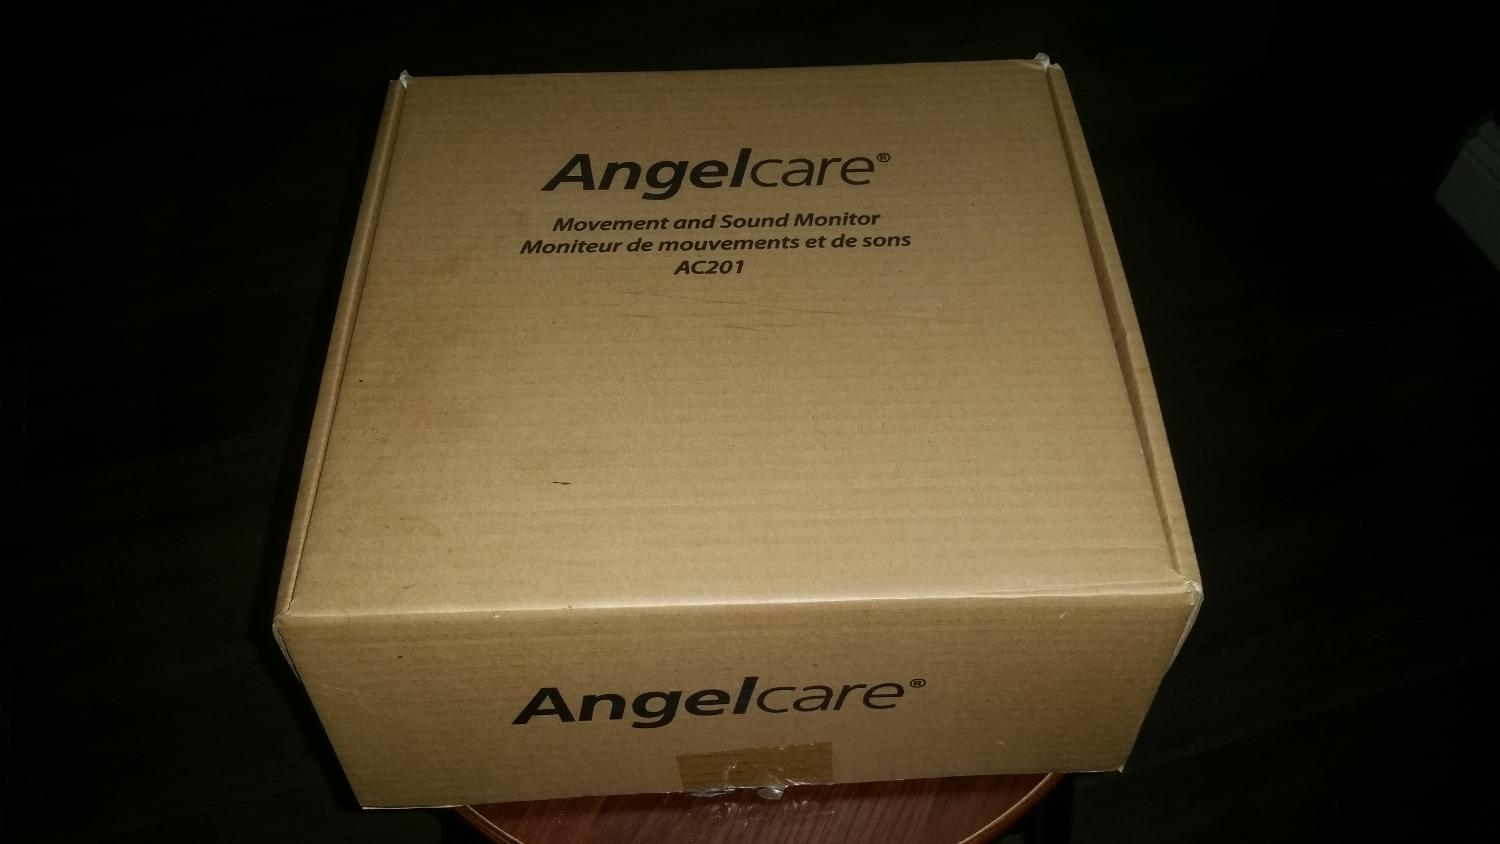 angelcare movement monitor instructions